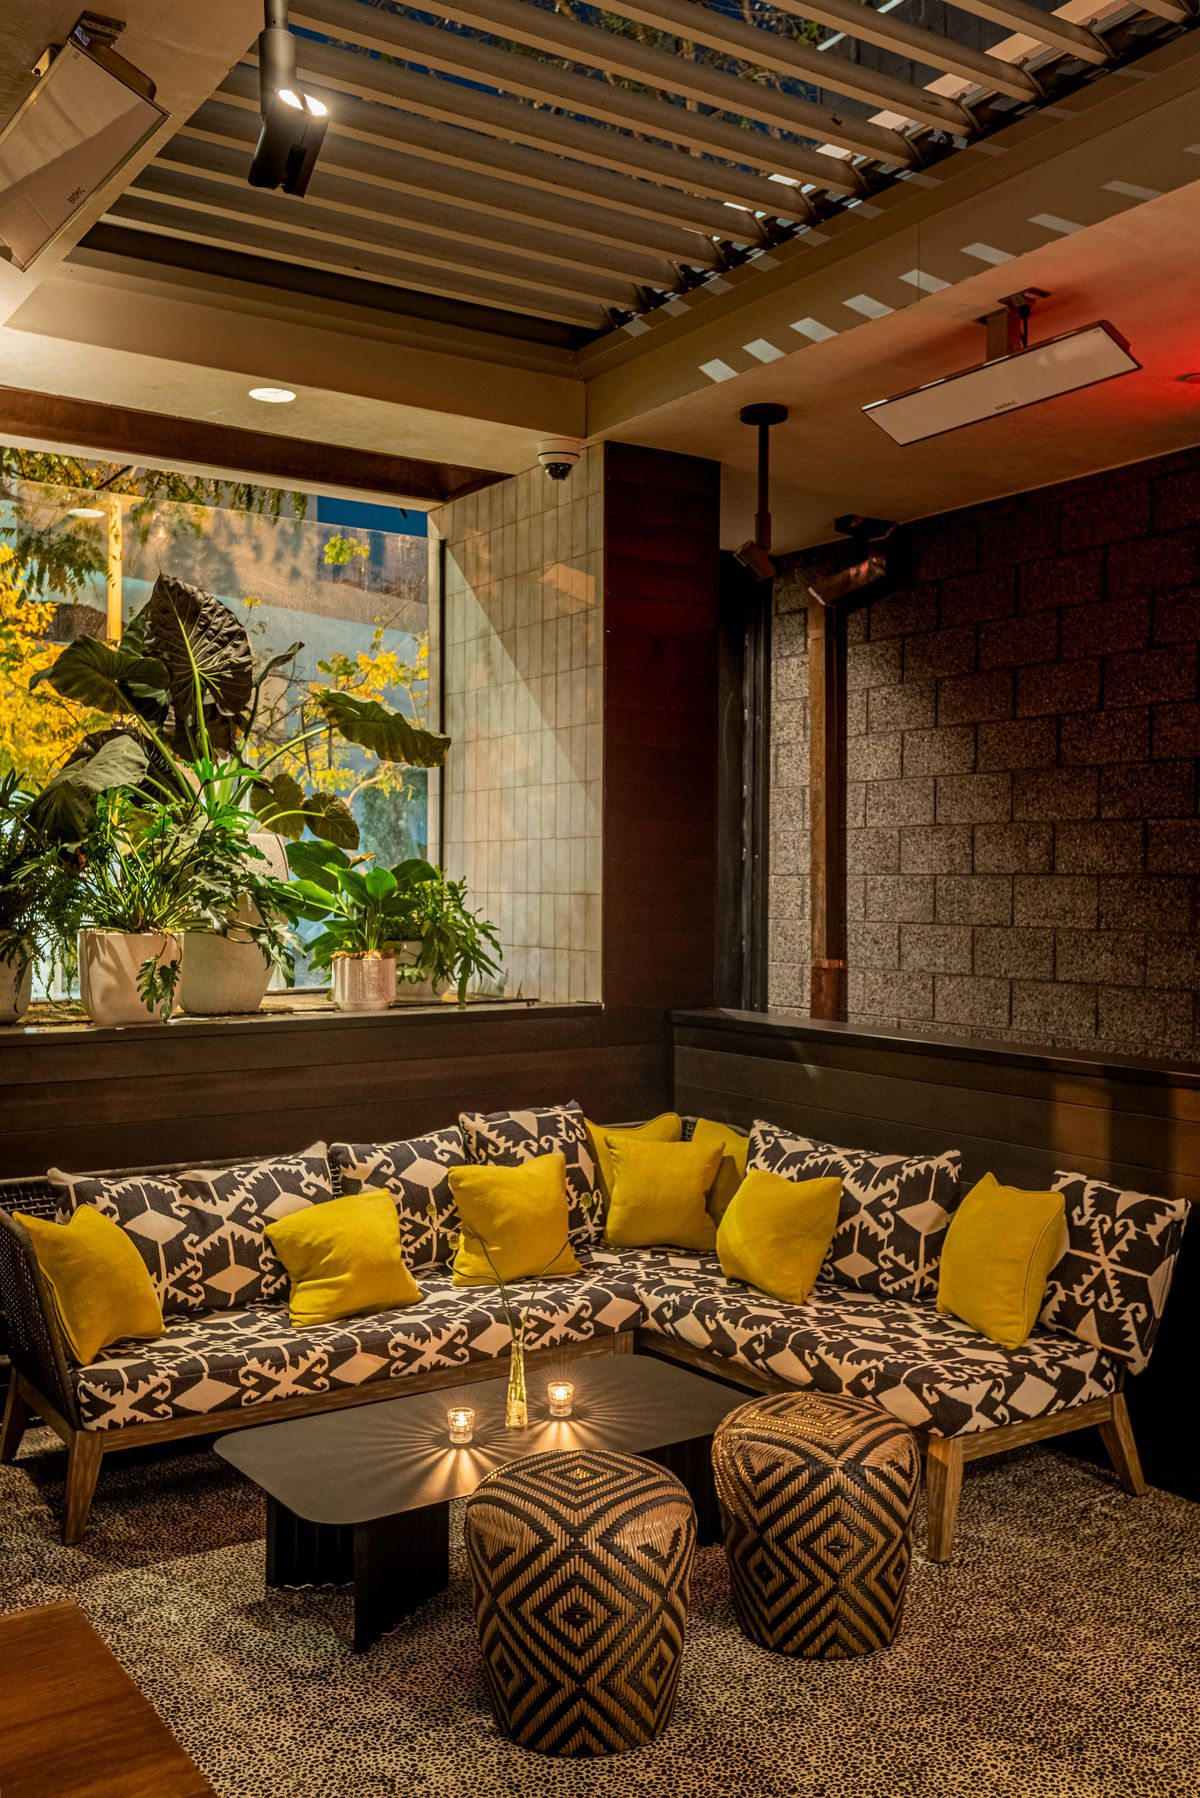 A corner lounge area at night inside of an open-air bar, with yellow pillows.